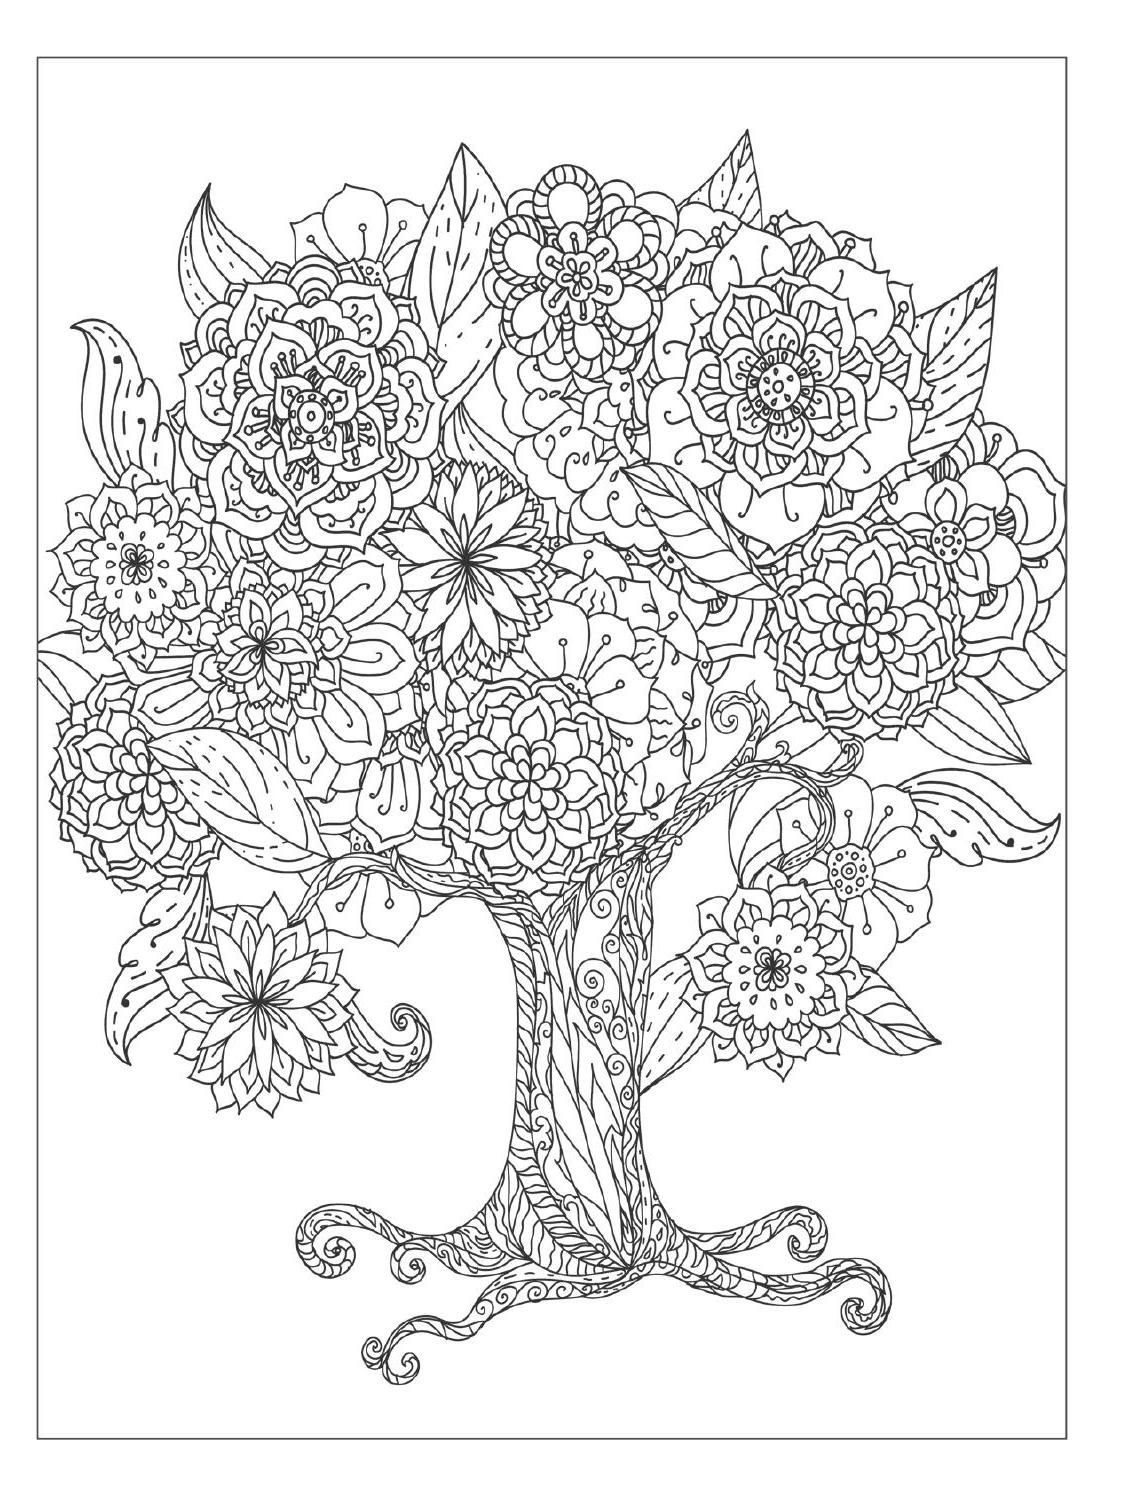 GAME PRIZES: Coloring Pages - Flower Coloring Pages, resize this ... | 1496x1127